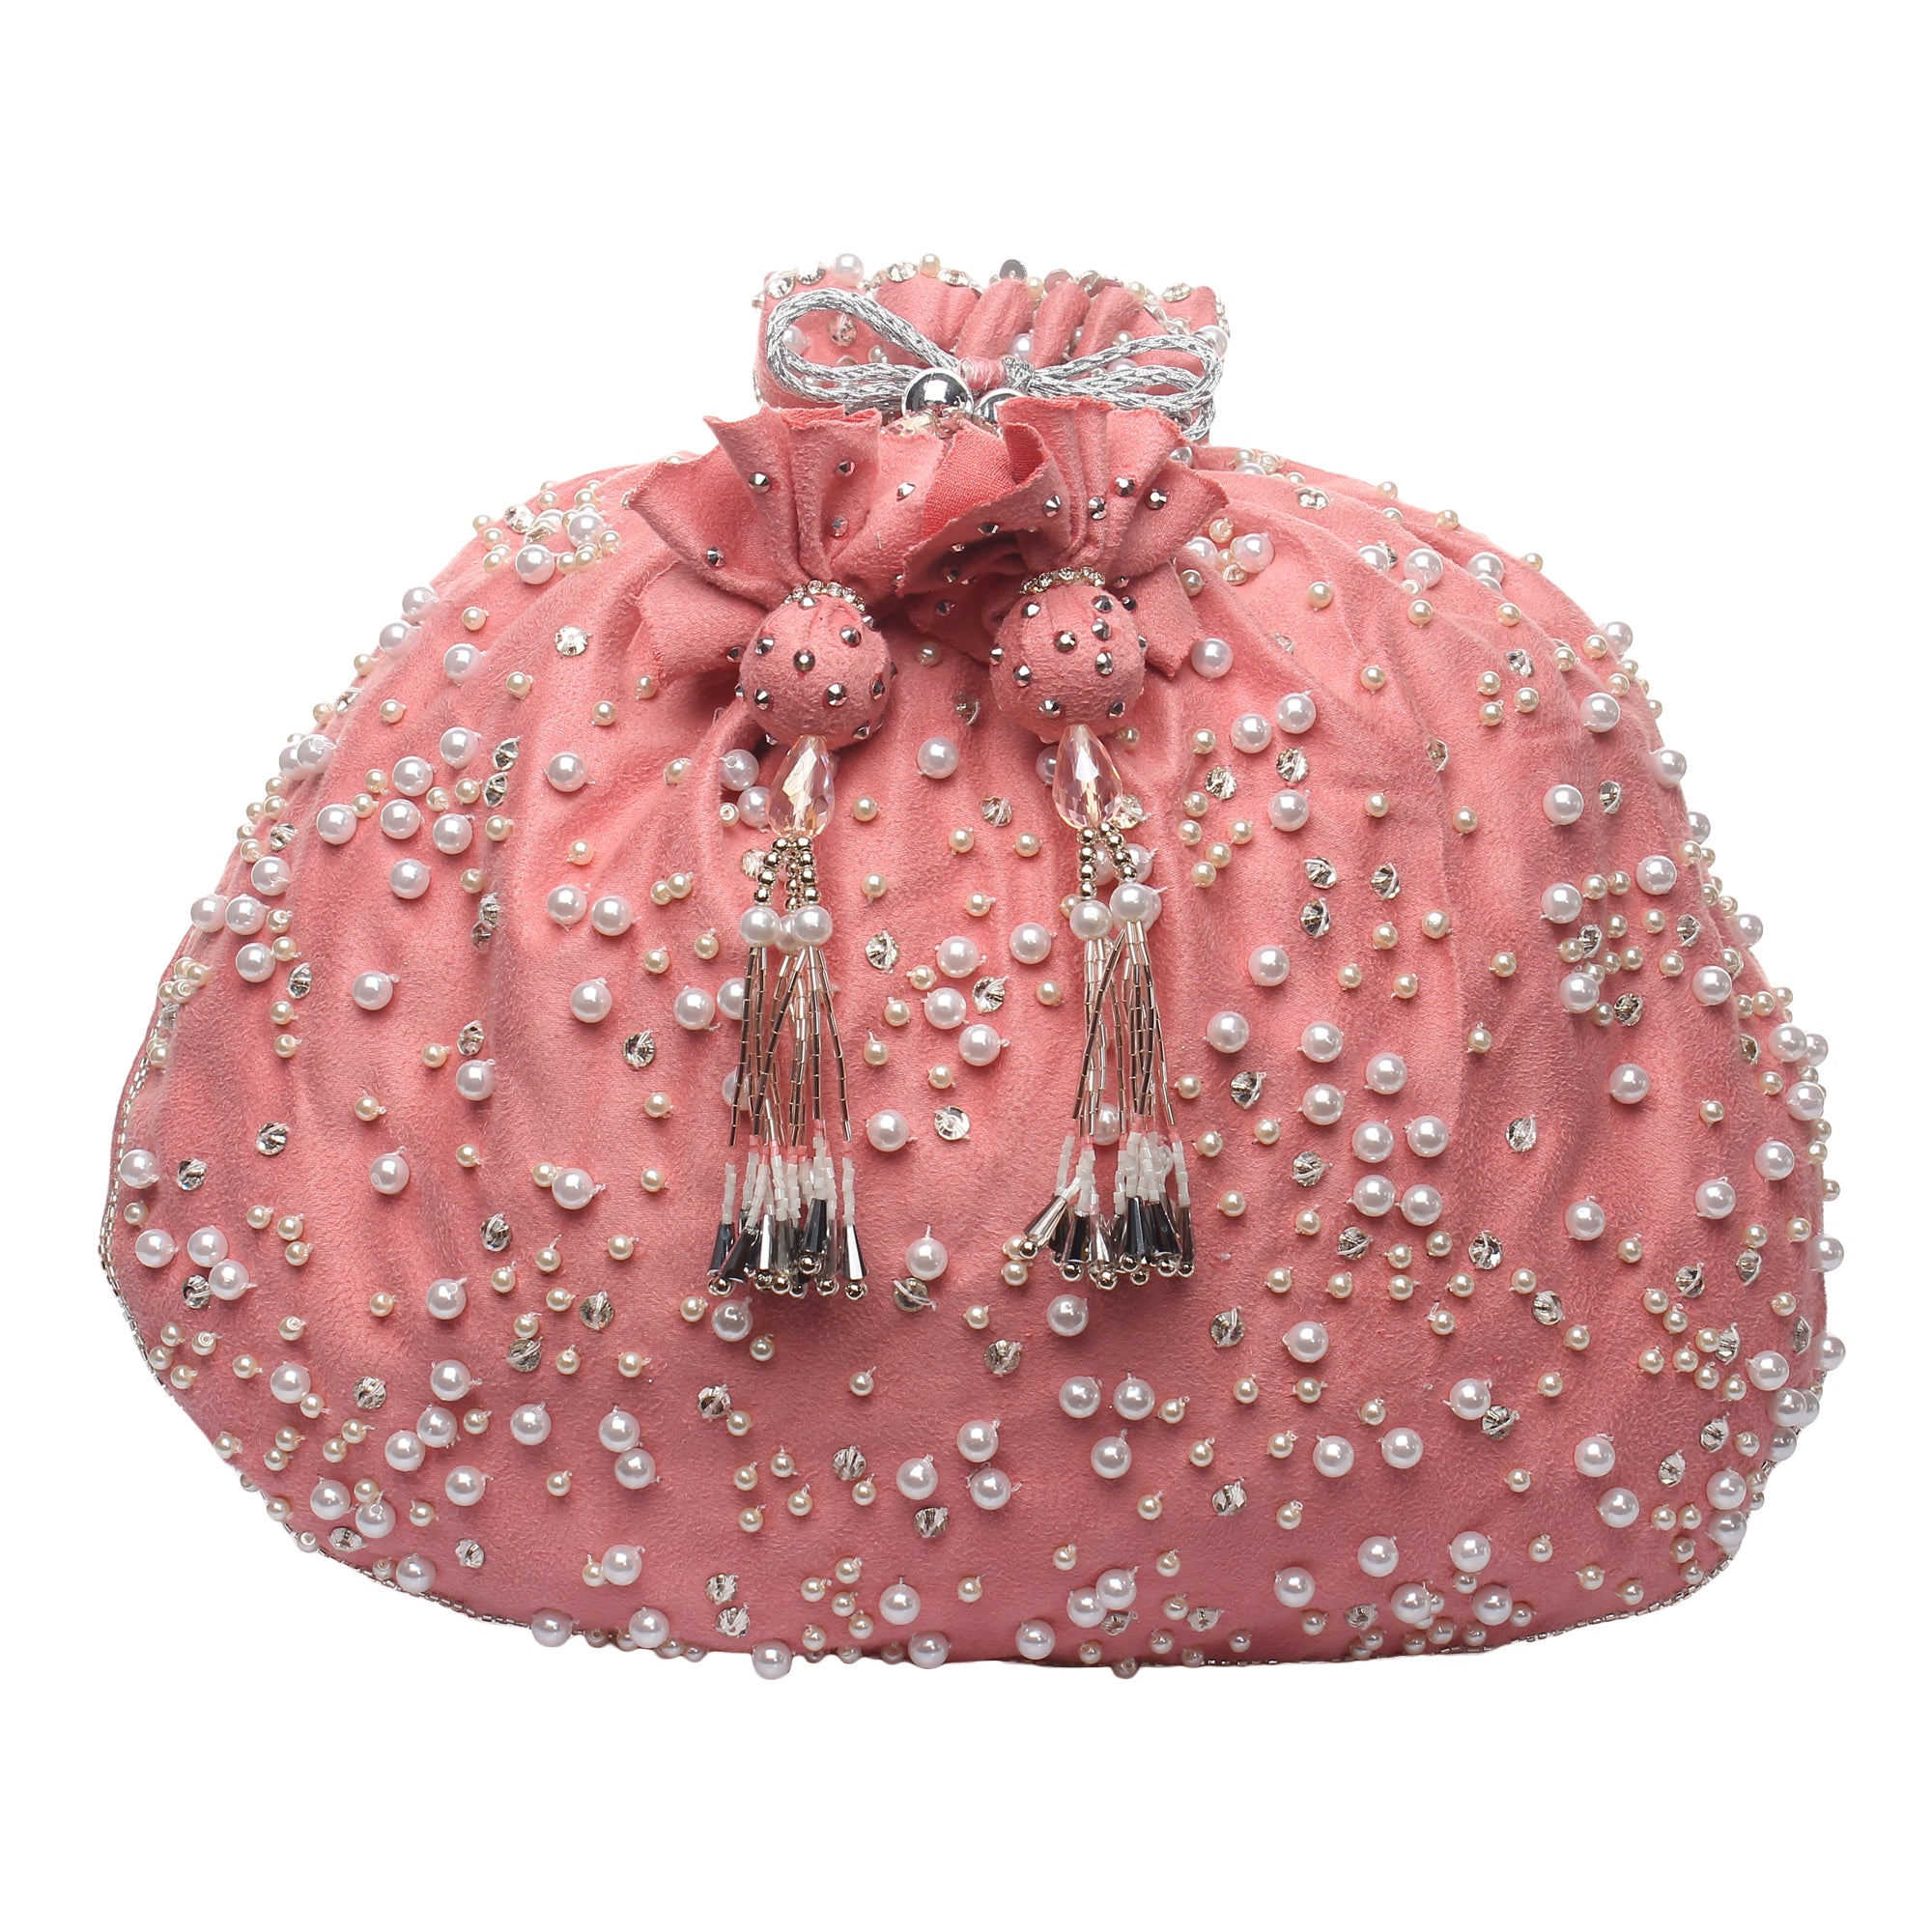 Pink Potli Bag with pearls and swrovksi crystals